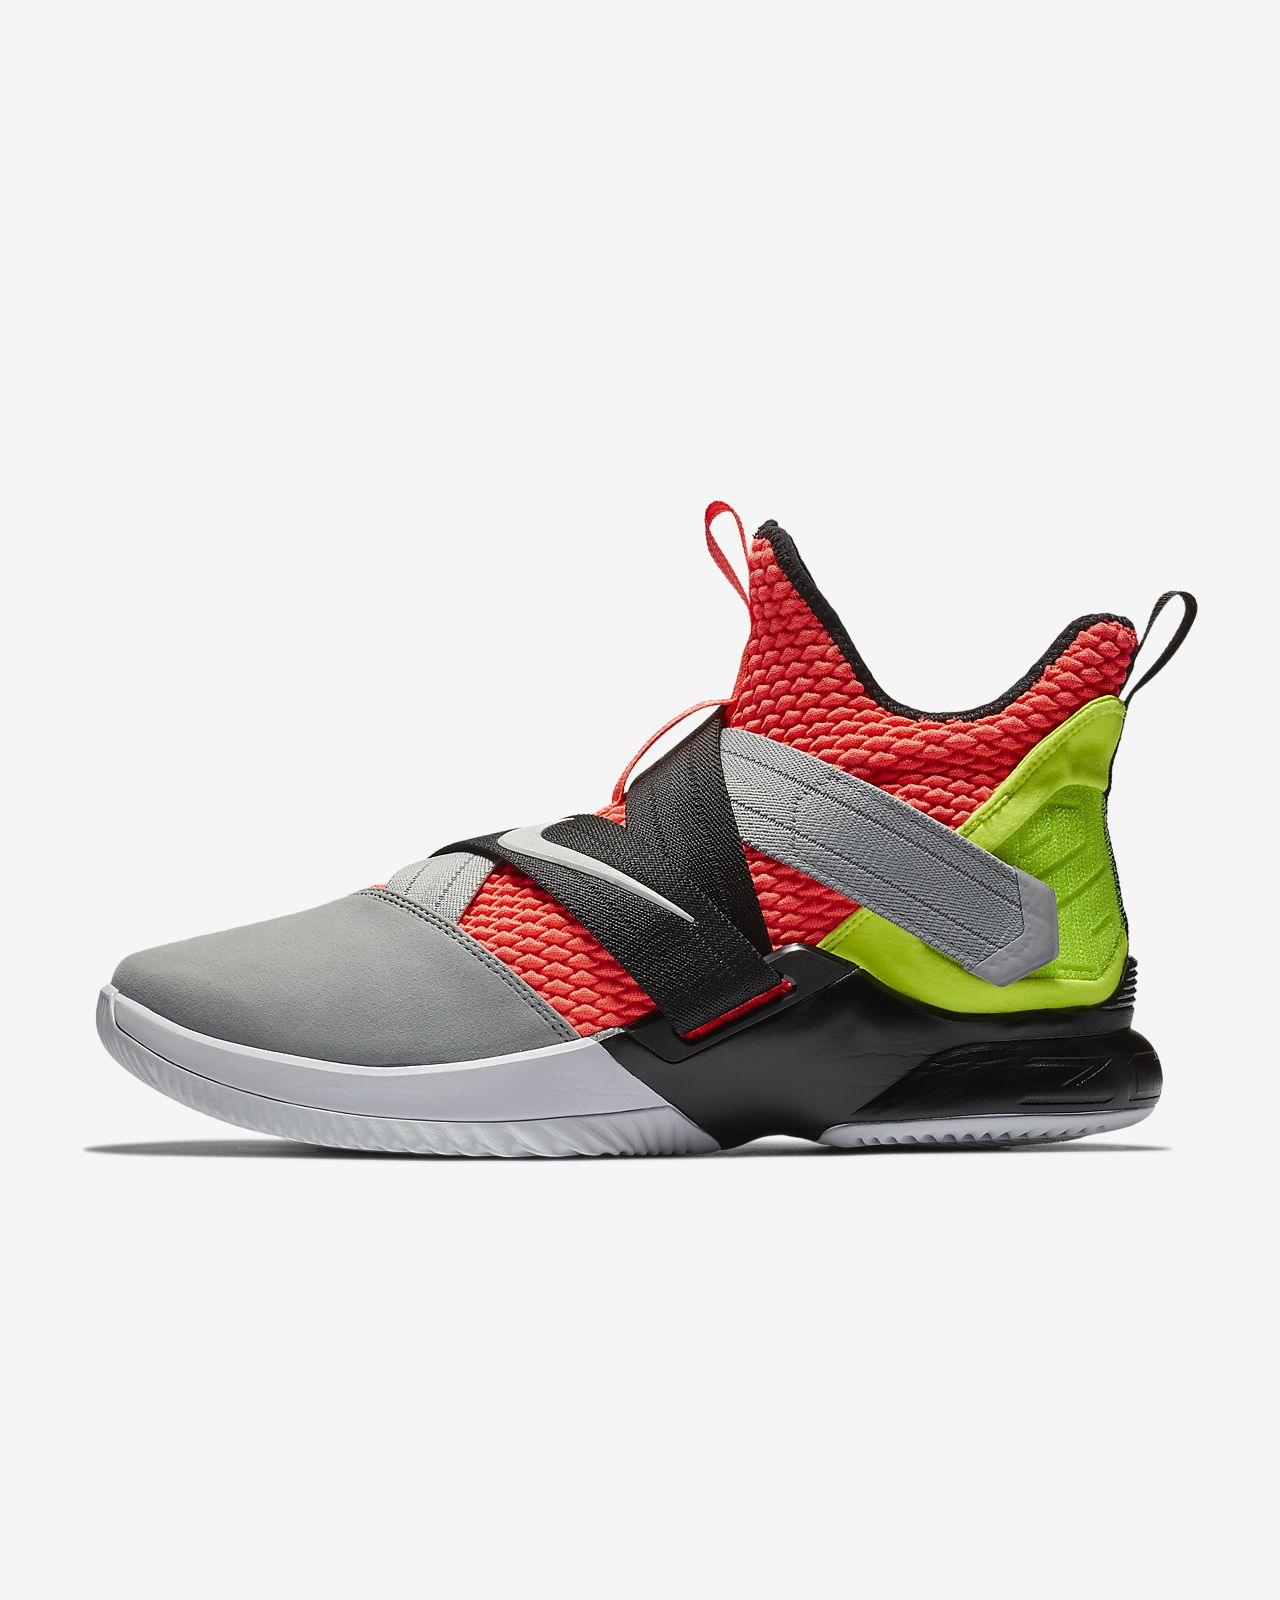 timeless design 222d1 b2089 LeBron Soldier 12 SFG Basketball Shoe